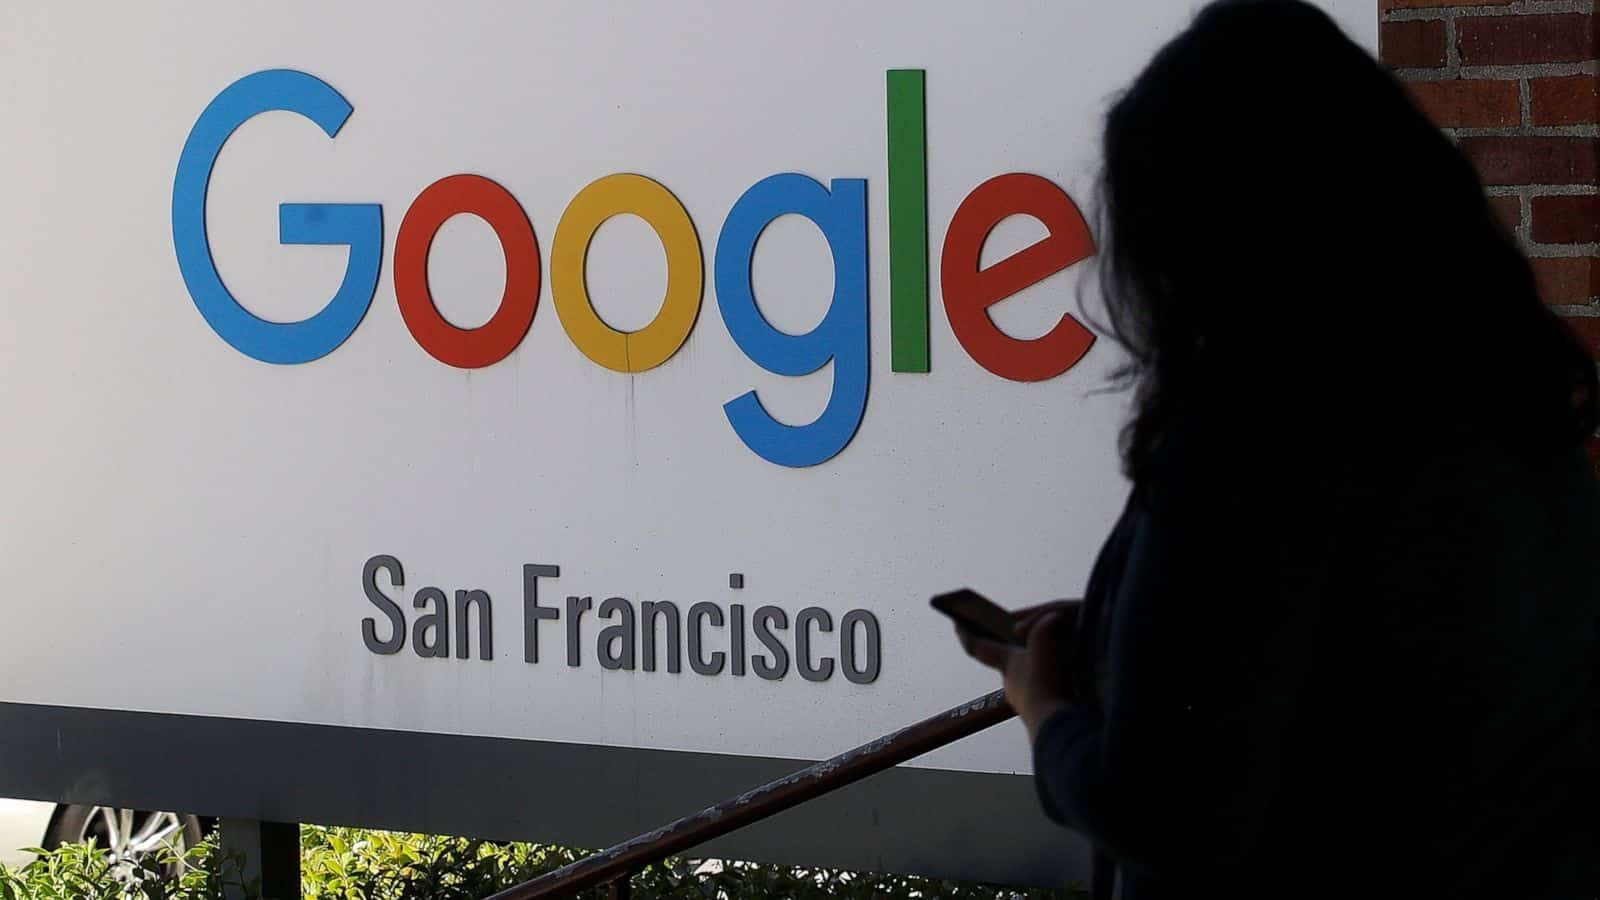 Google Invests $1 Billion in Housing in the San Francisco Bay Area as Expansion Continues